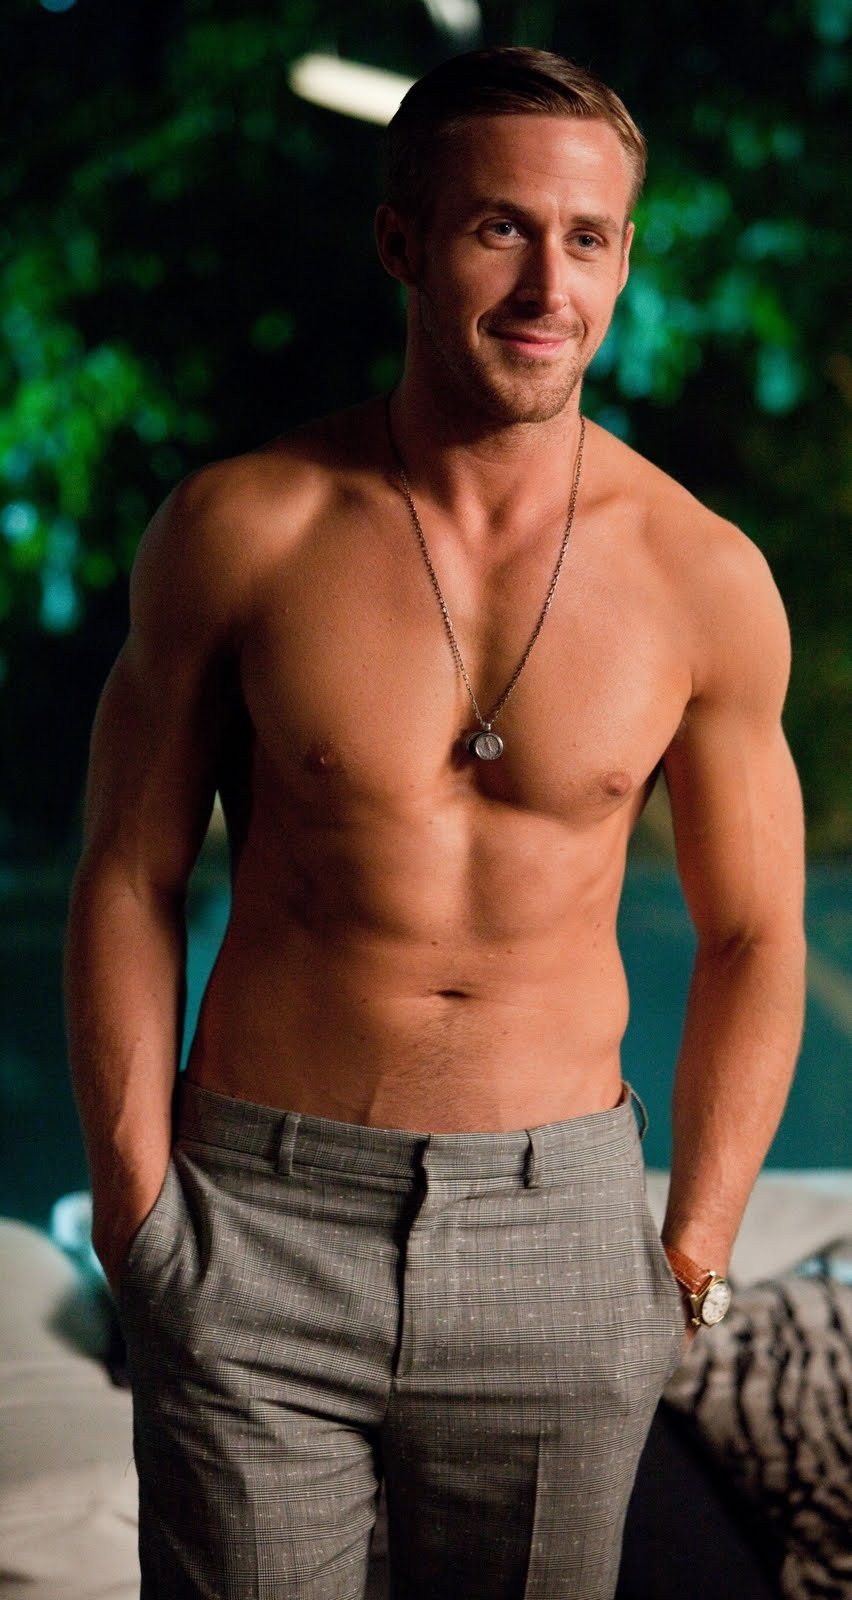 Ryan Gosling Shirtless 24-7! Time Warner To Launch Ryan-Only TV ...